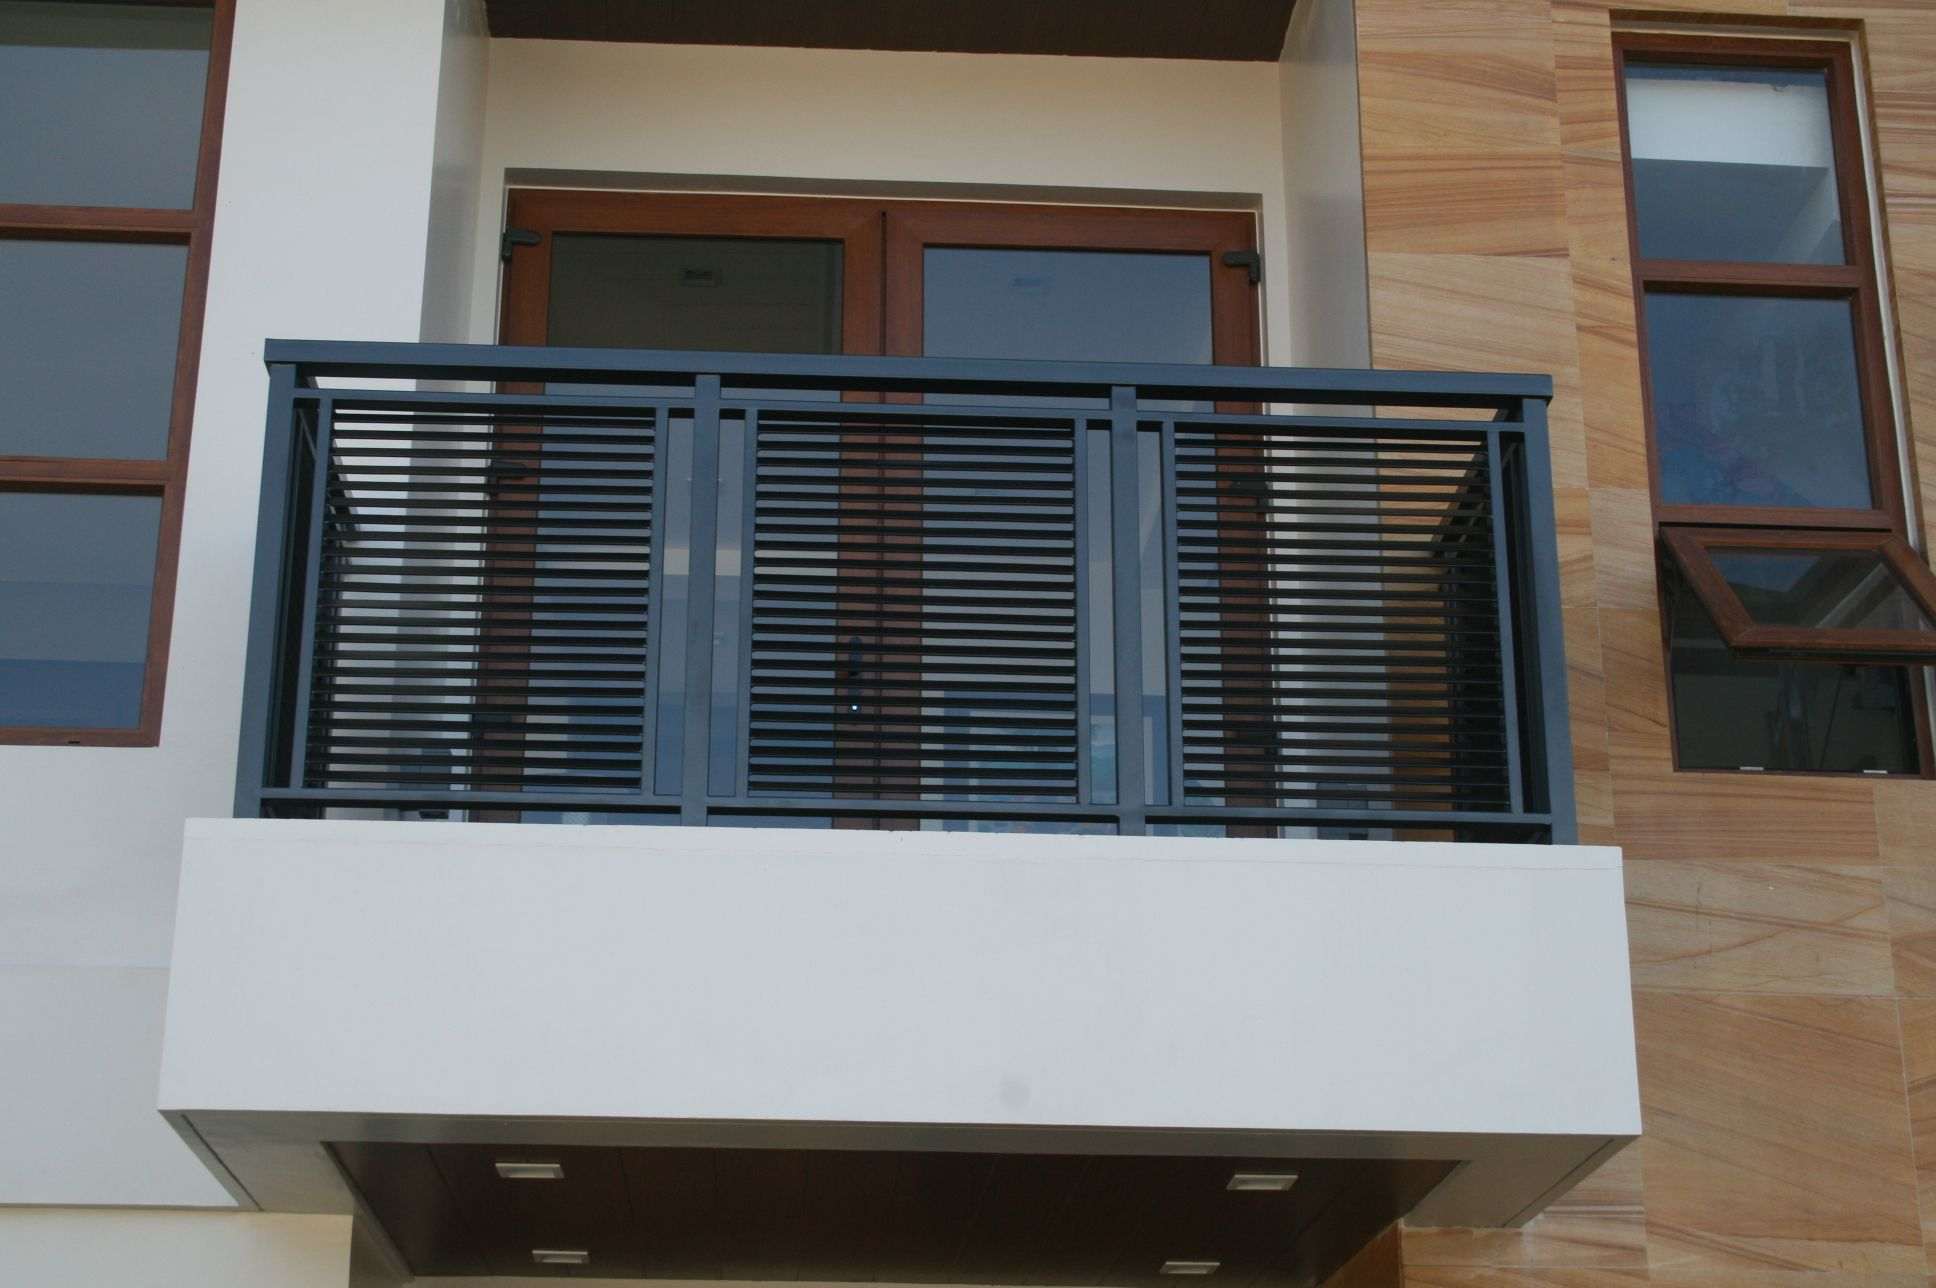 Modern balcony railing philippines pinteres for Exterior balcony railing design